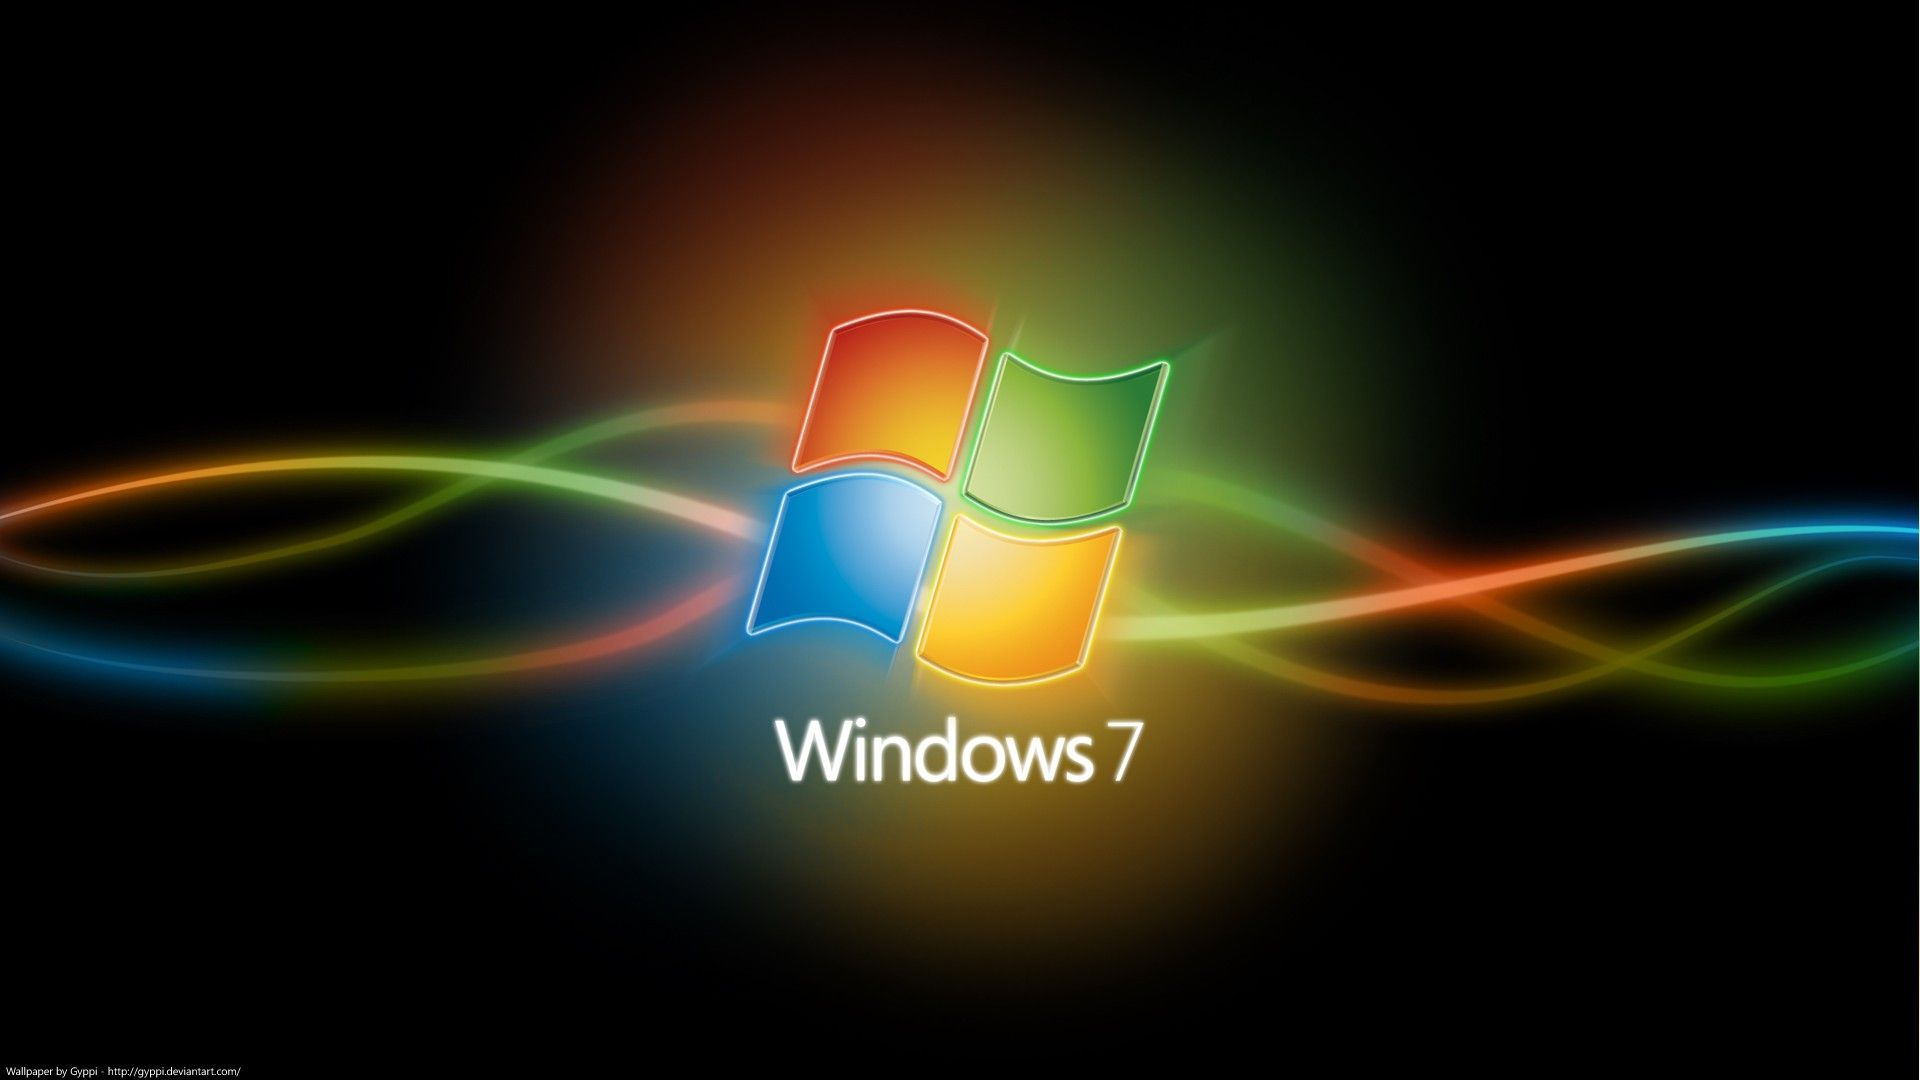 Gif As Wallpaper Windows 7